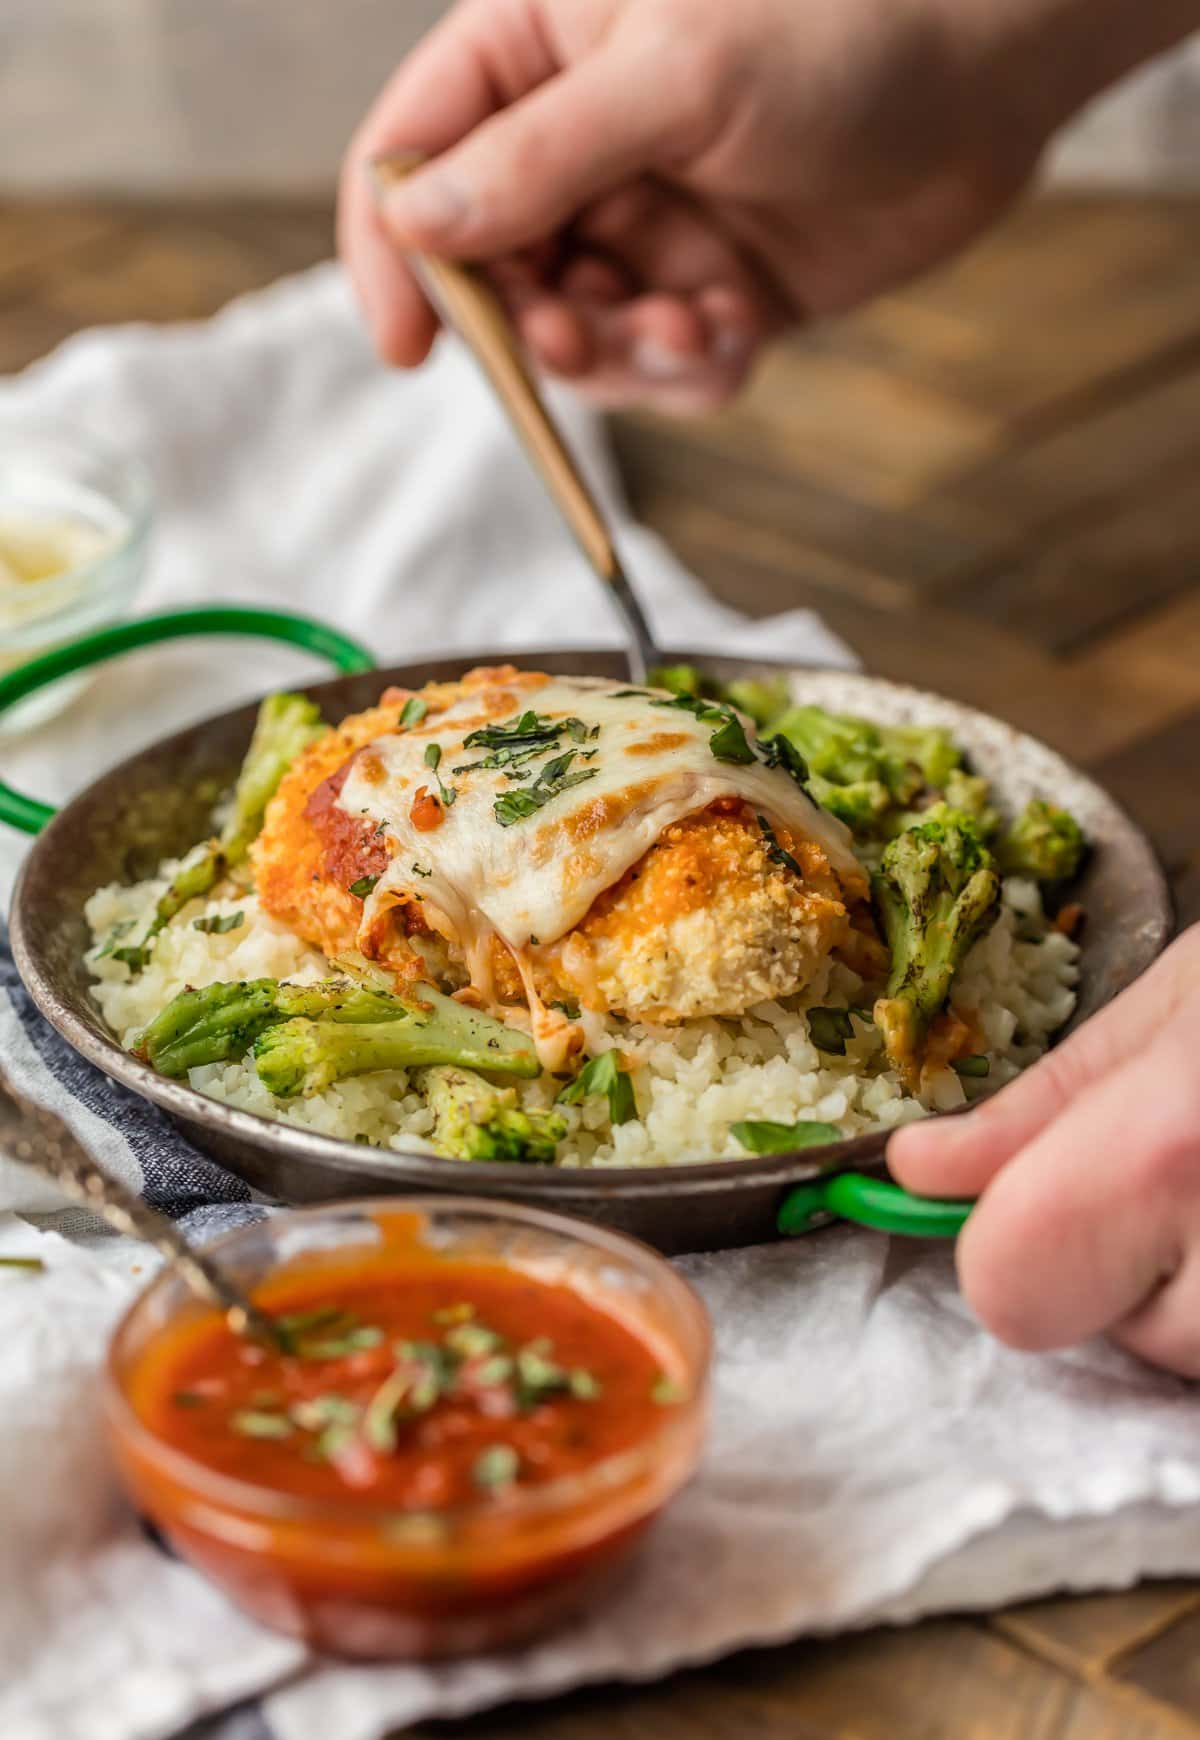 A bowl filled with cauliflower rice and baked chicken parmesan